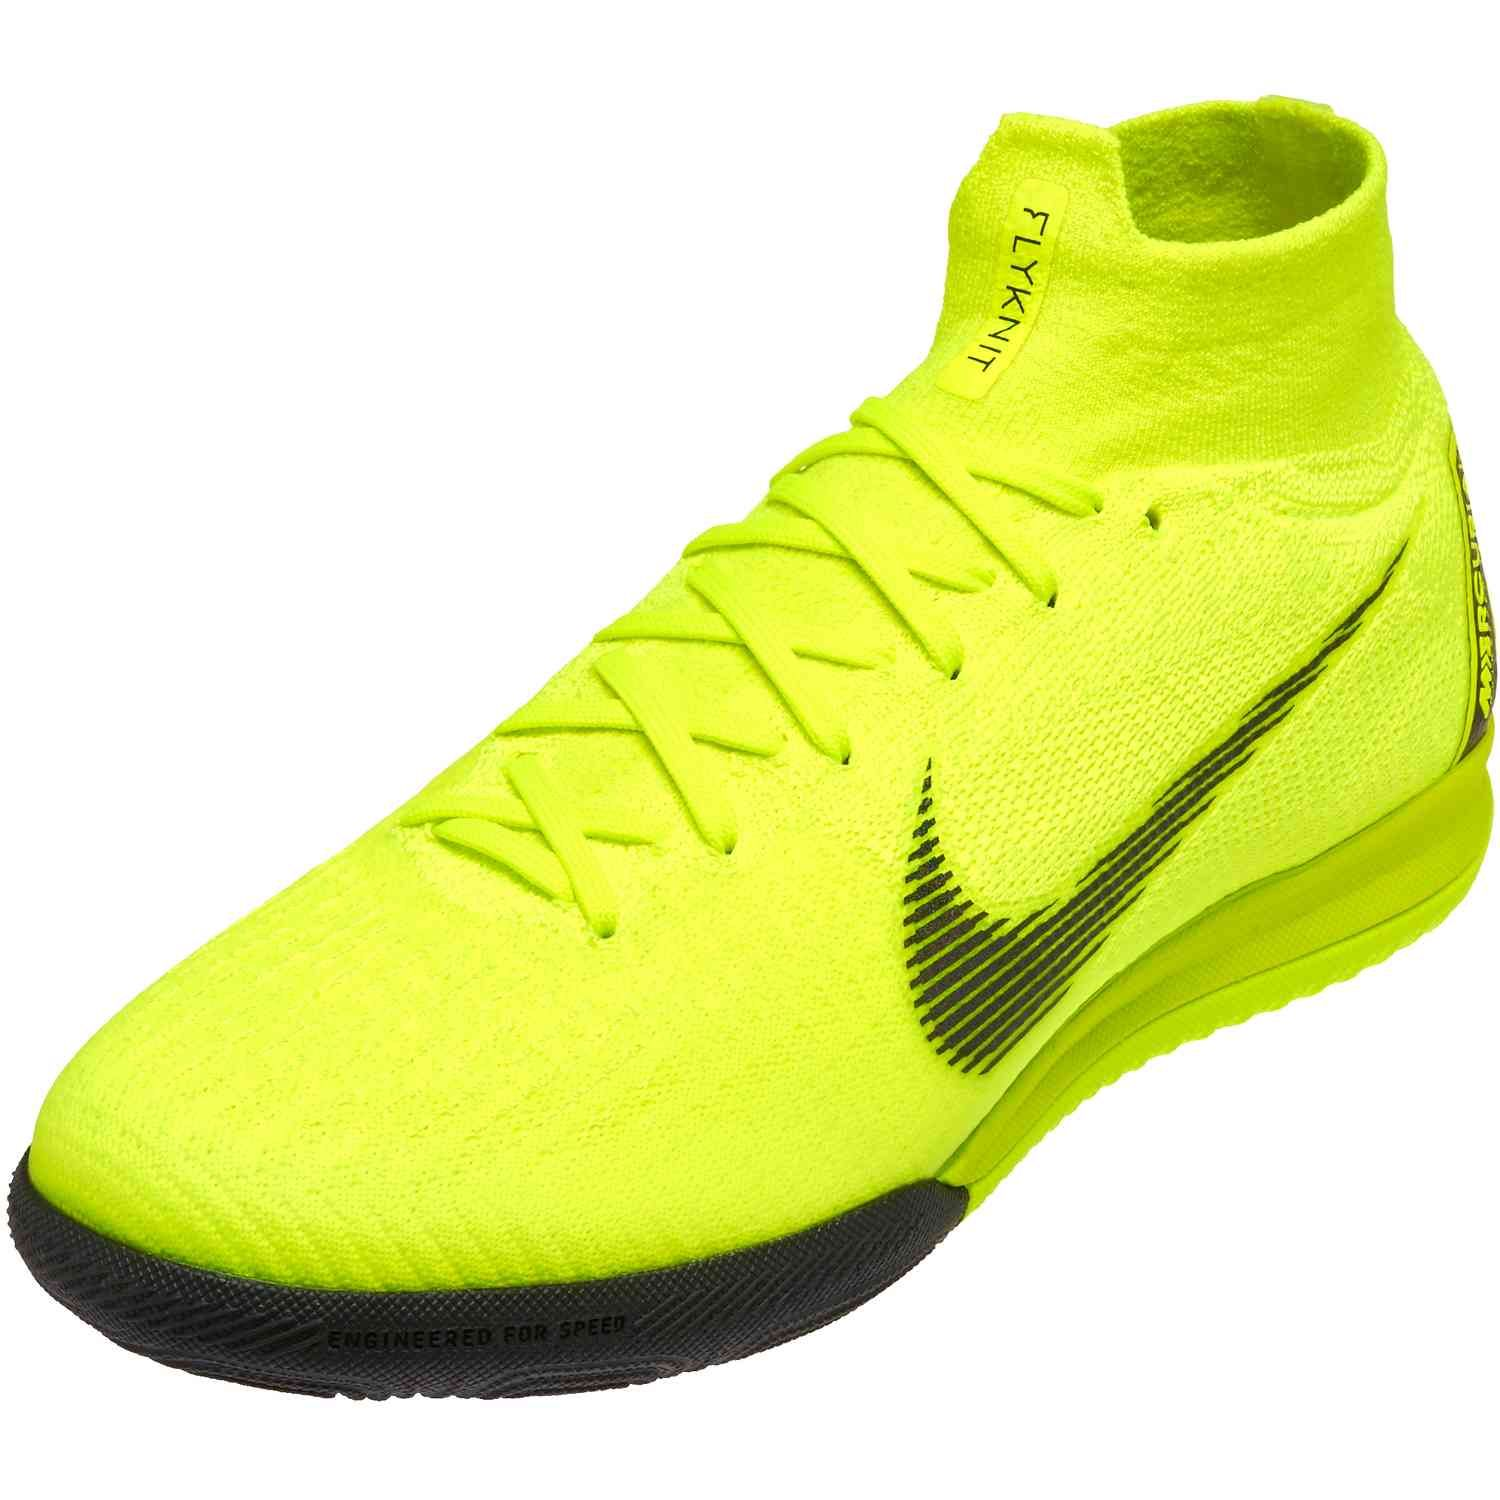 Pin On Nike Mercurial Superfly Soccer Cleats